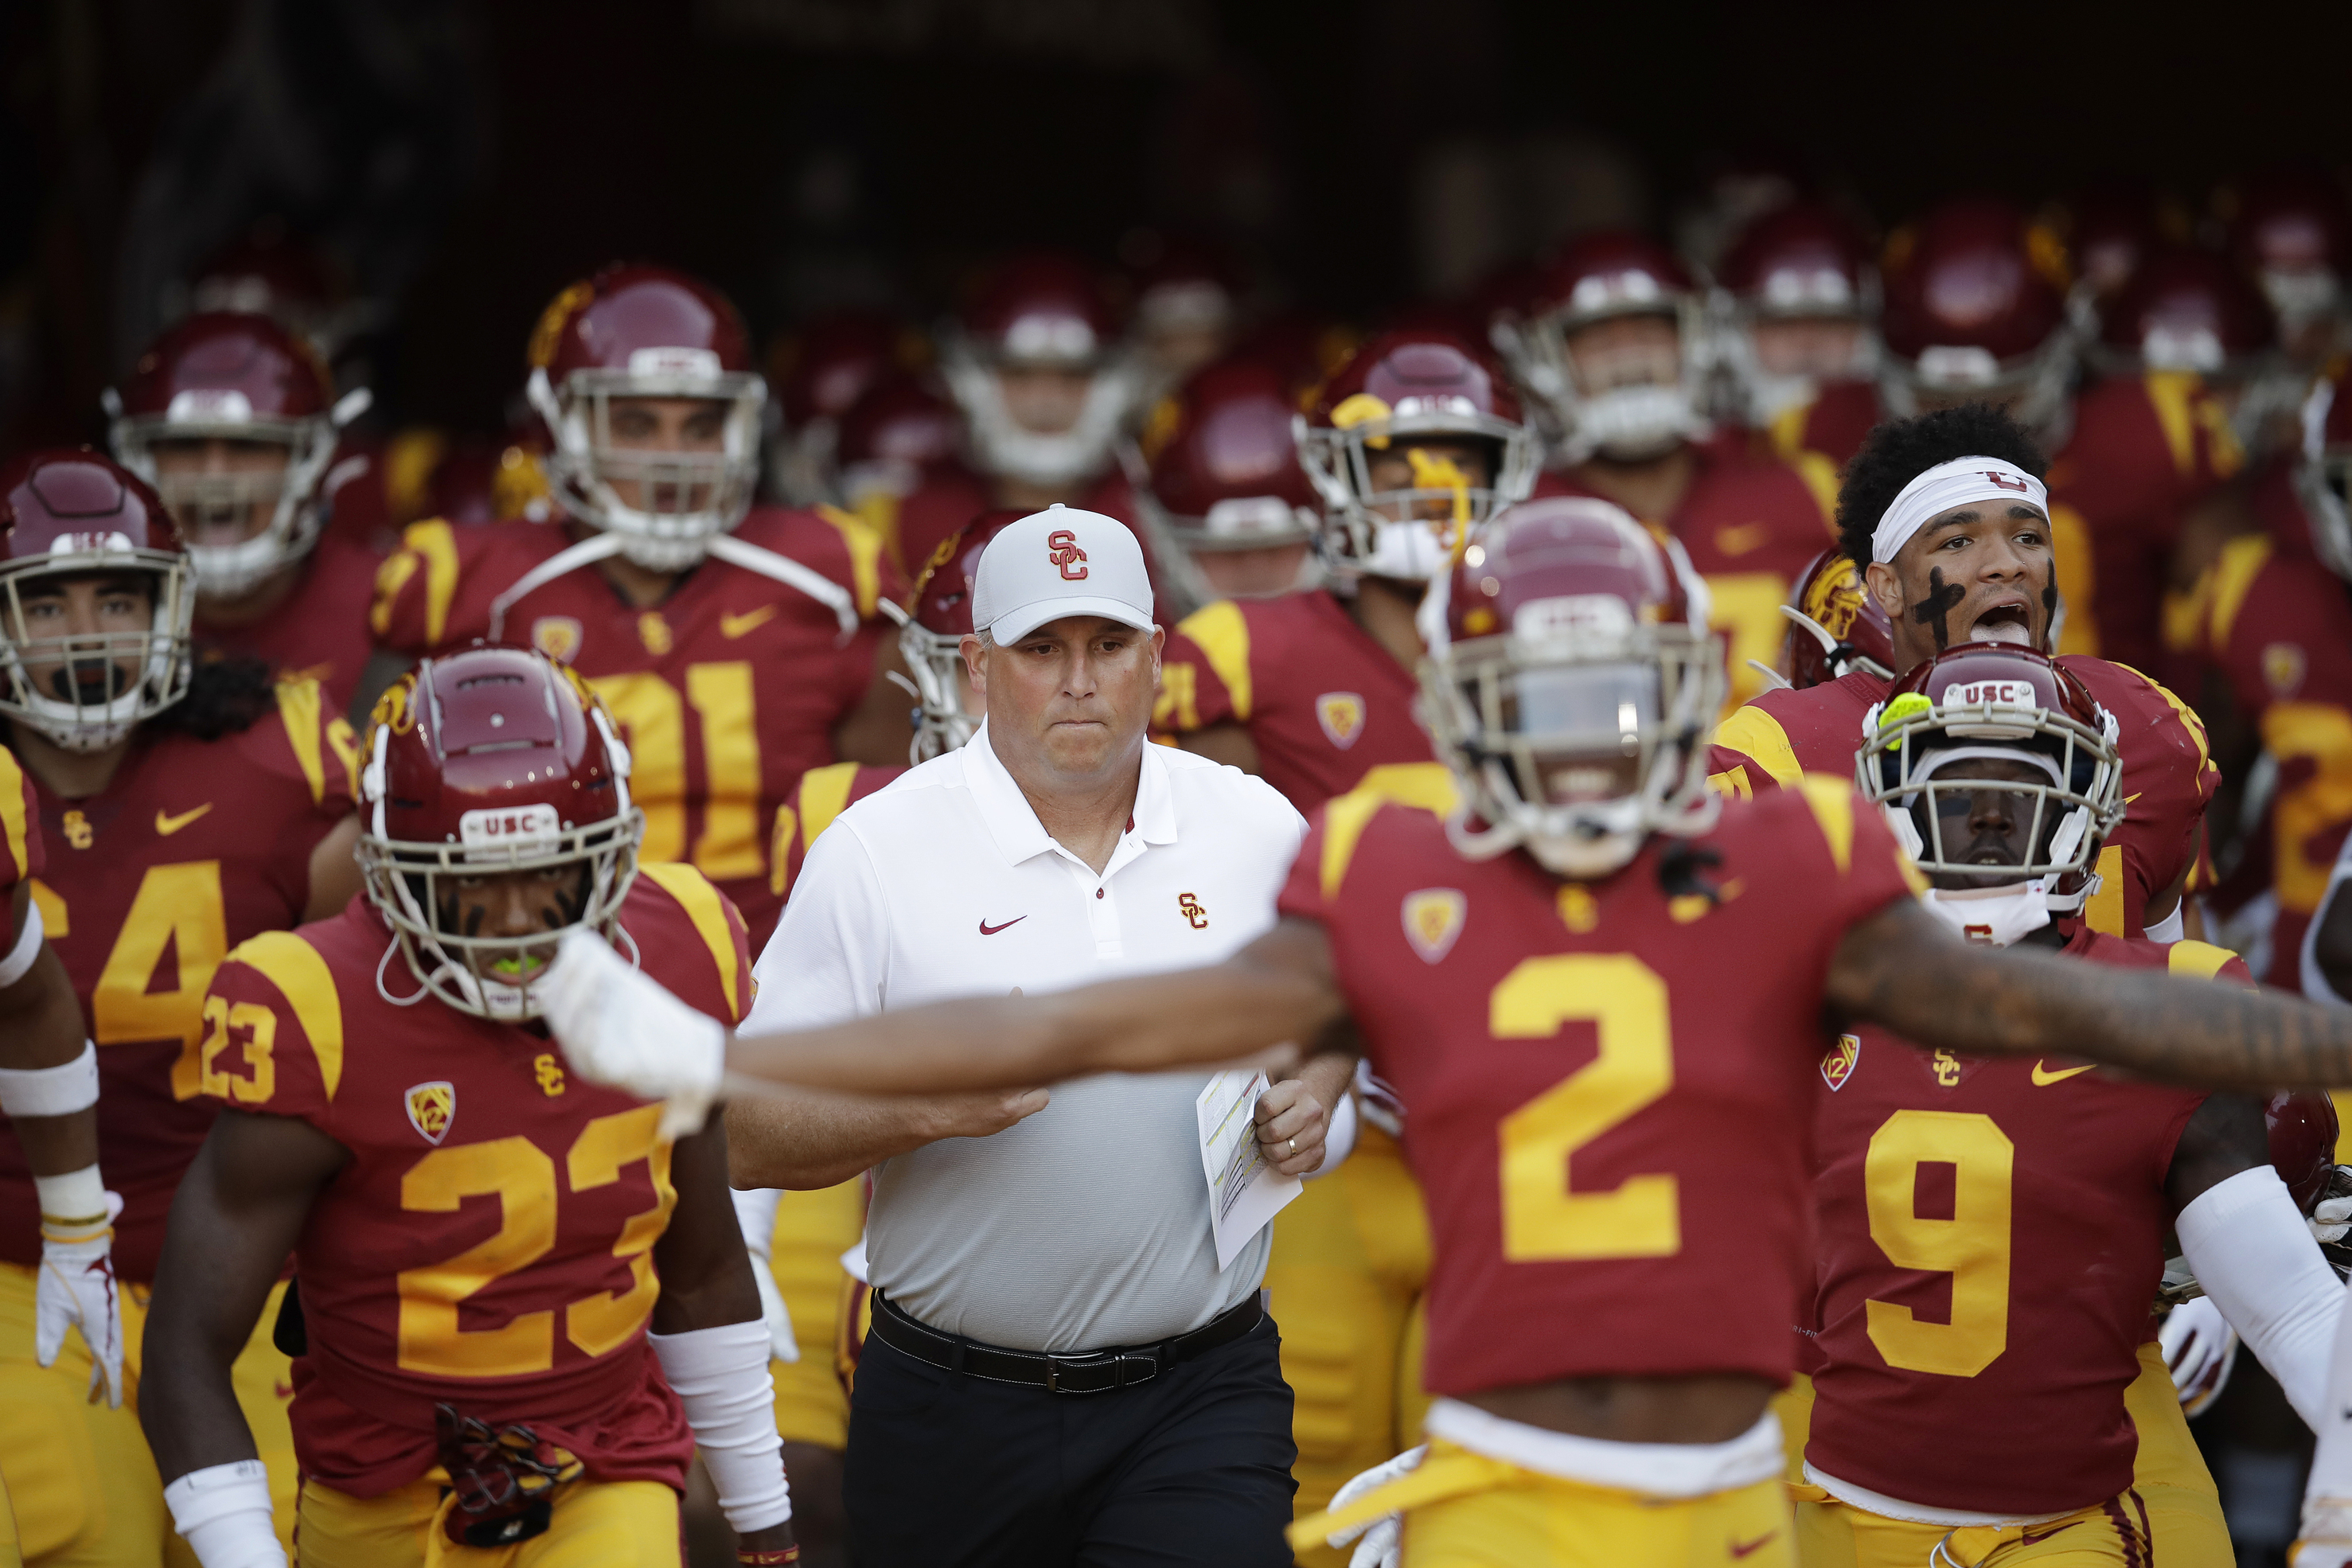 Plaschke: Like it or not, USC